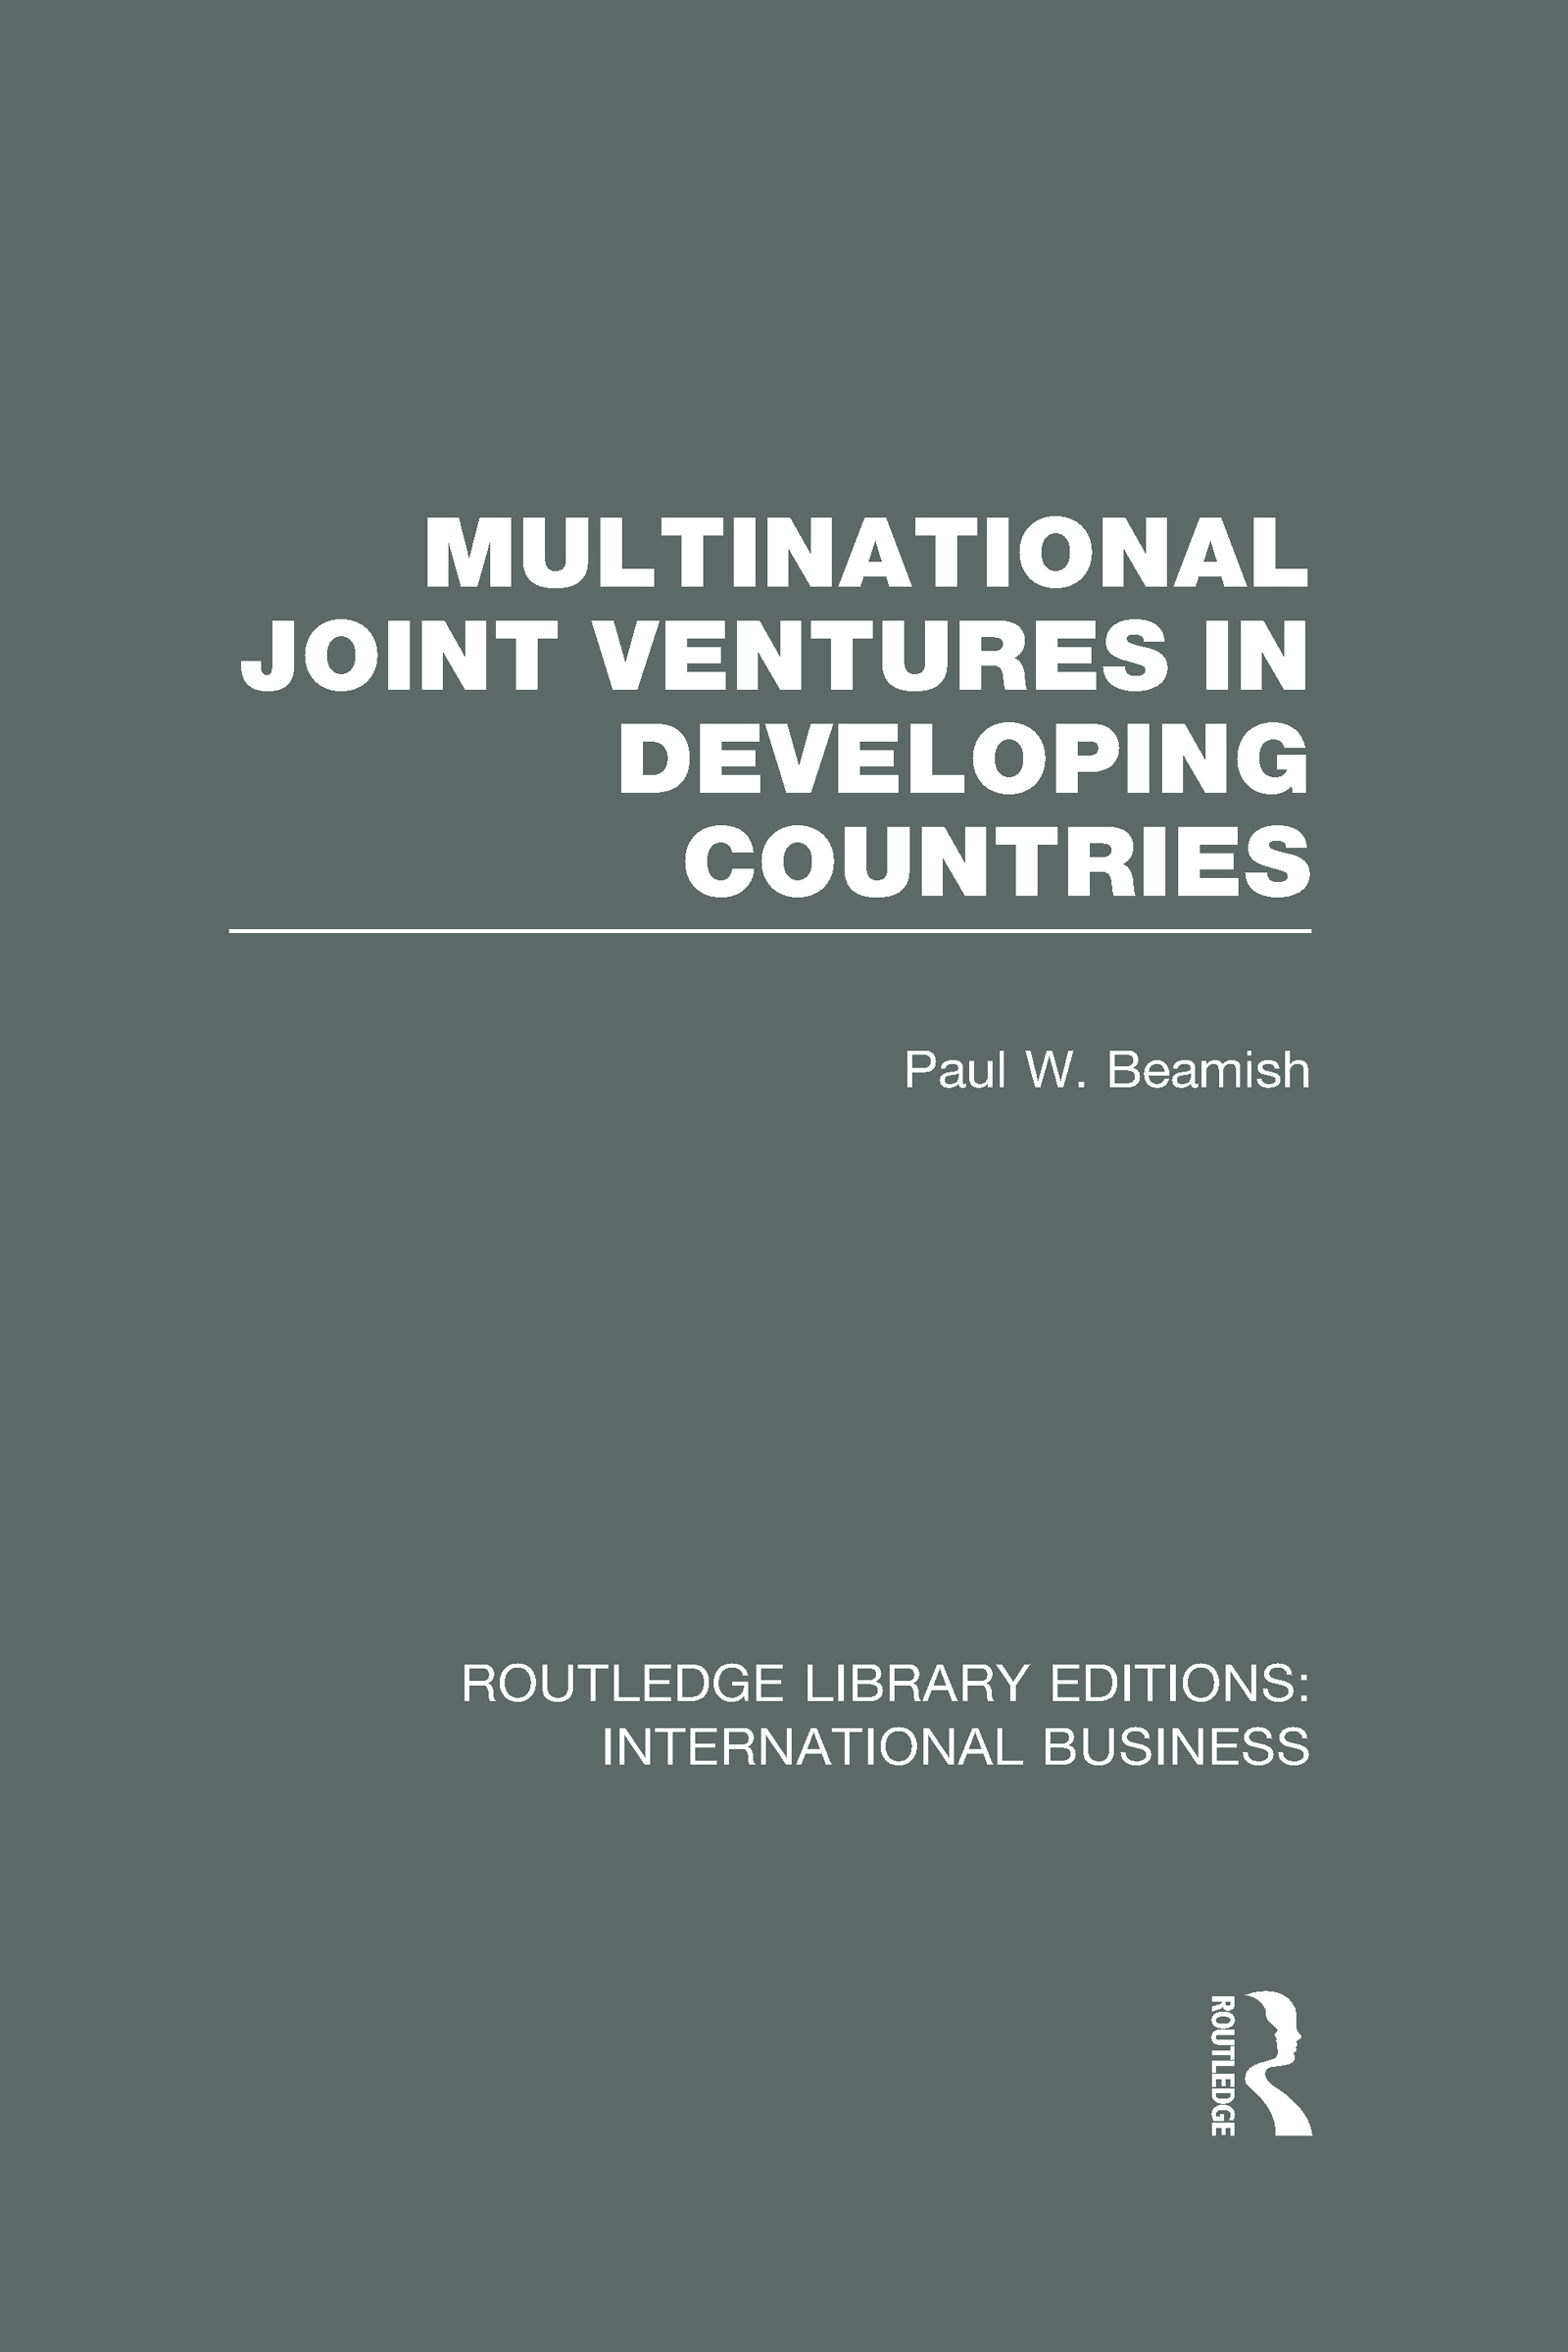 Multinational Joint Ventures in Developing Countries (RLE International Business) (Hardback) book cover